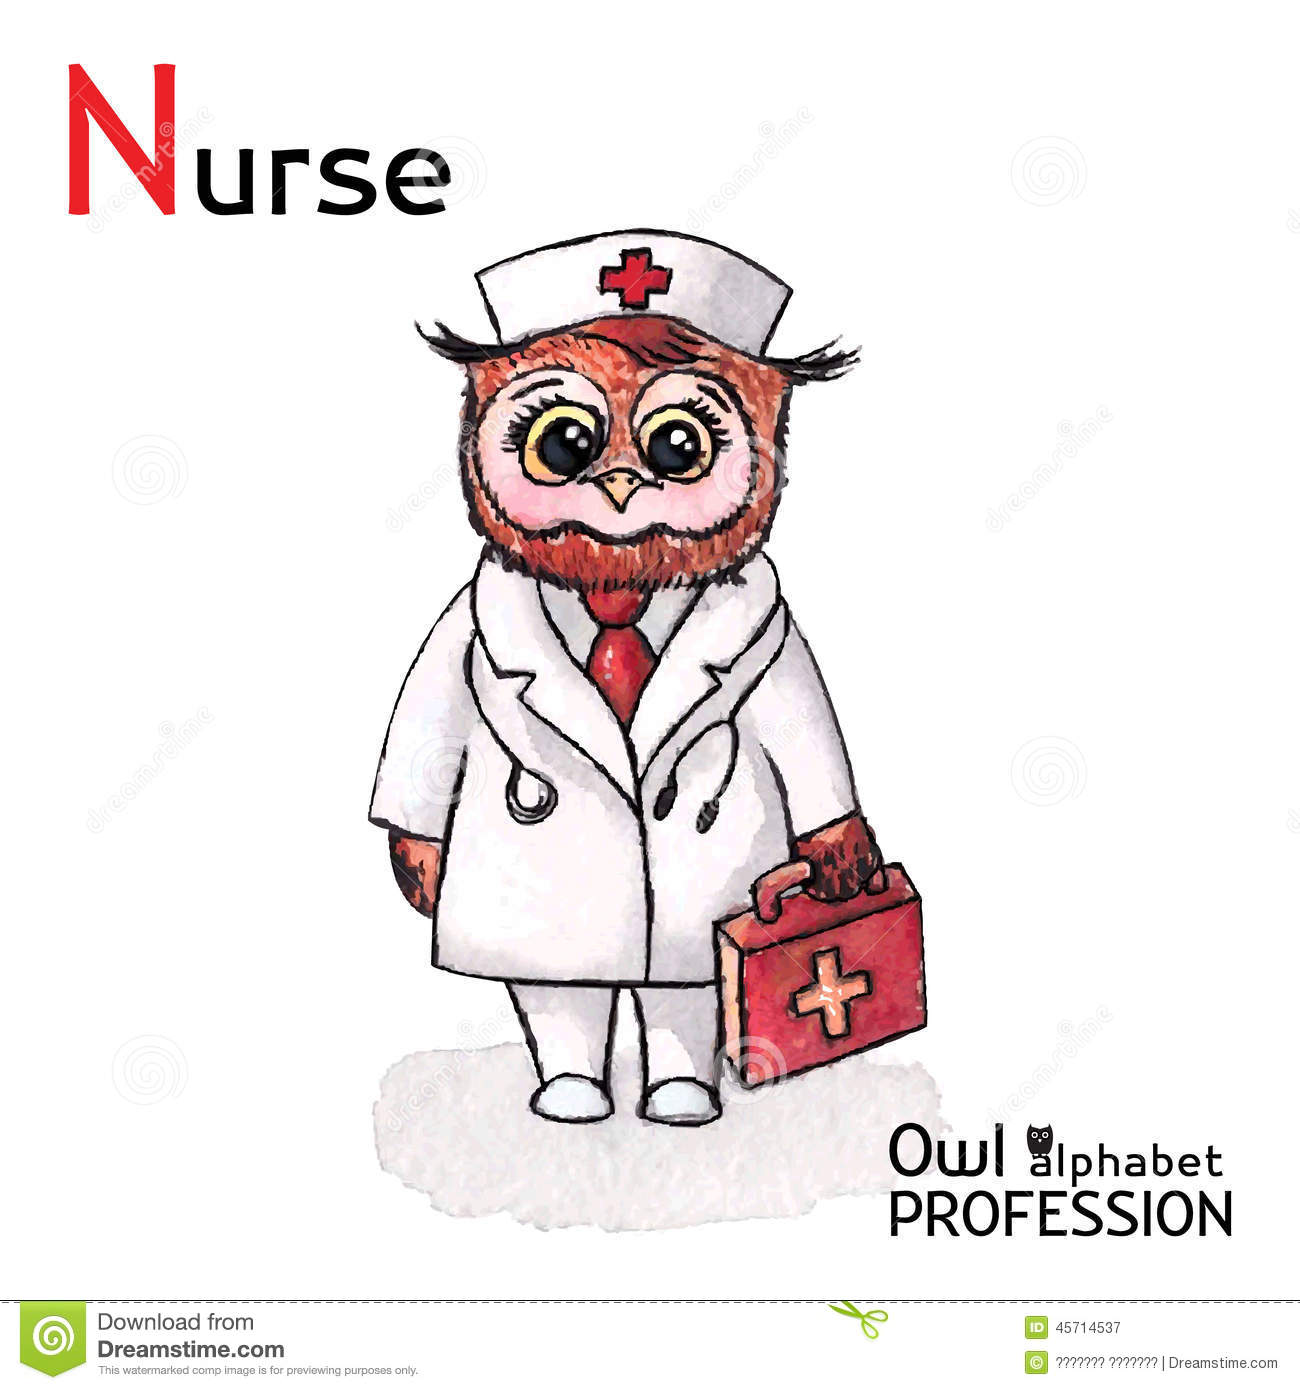 Alphabet Professions Owl Letter N Nurse Character Vector Watercolor